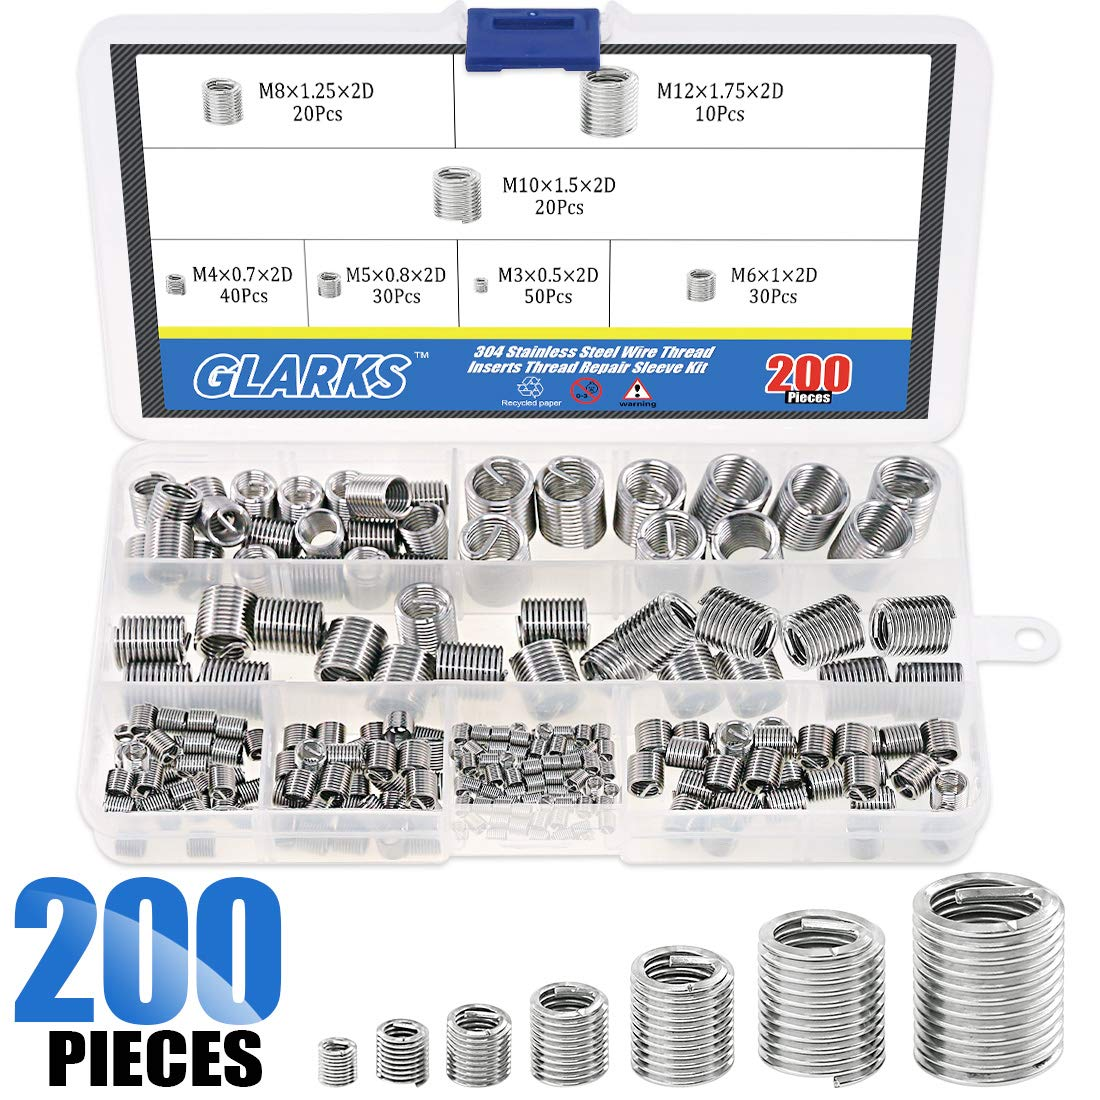 Helicoil Thread Repair Kit,50pcs M3 x 2D Stainless Steel Helicoi Screw Thread Inserts Set